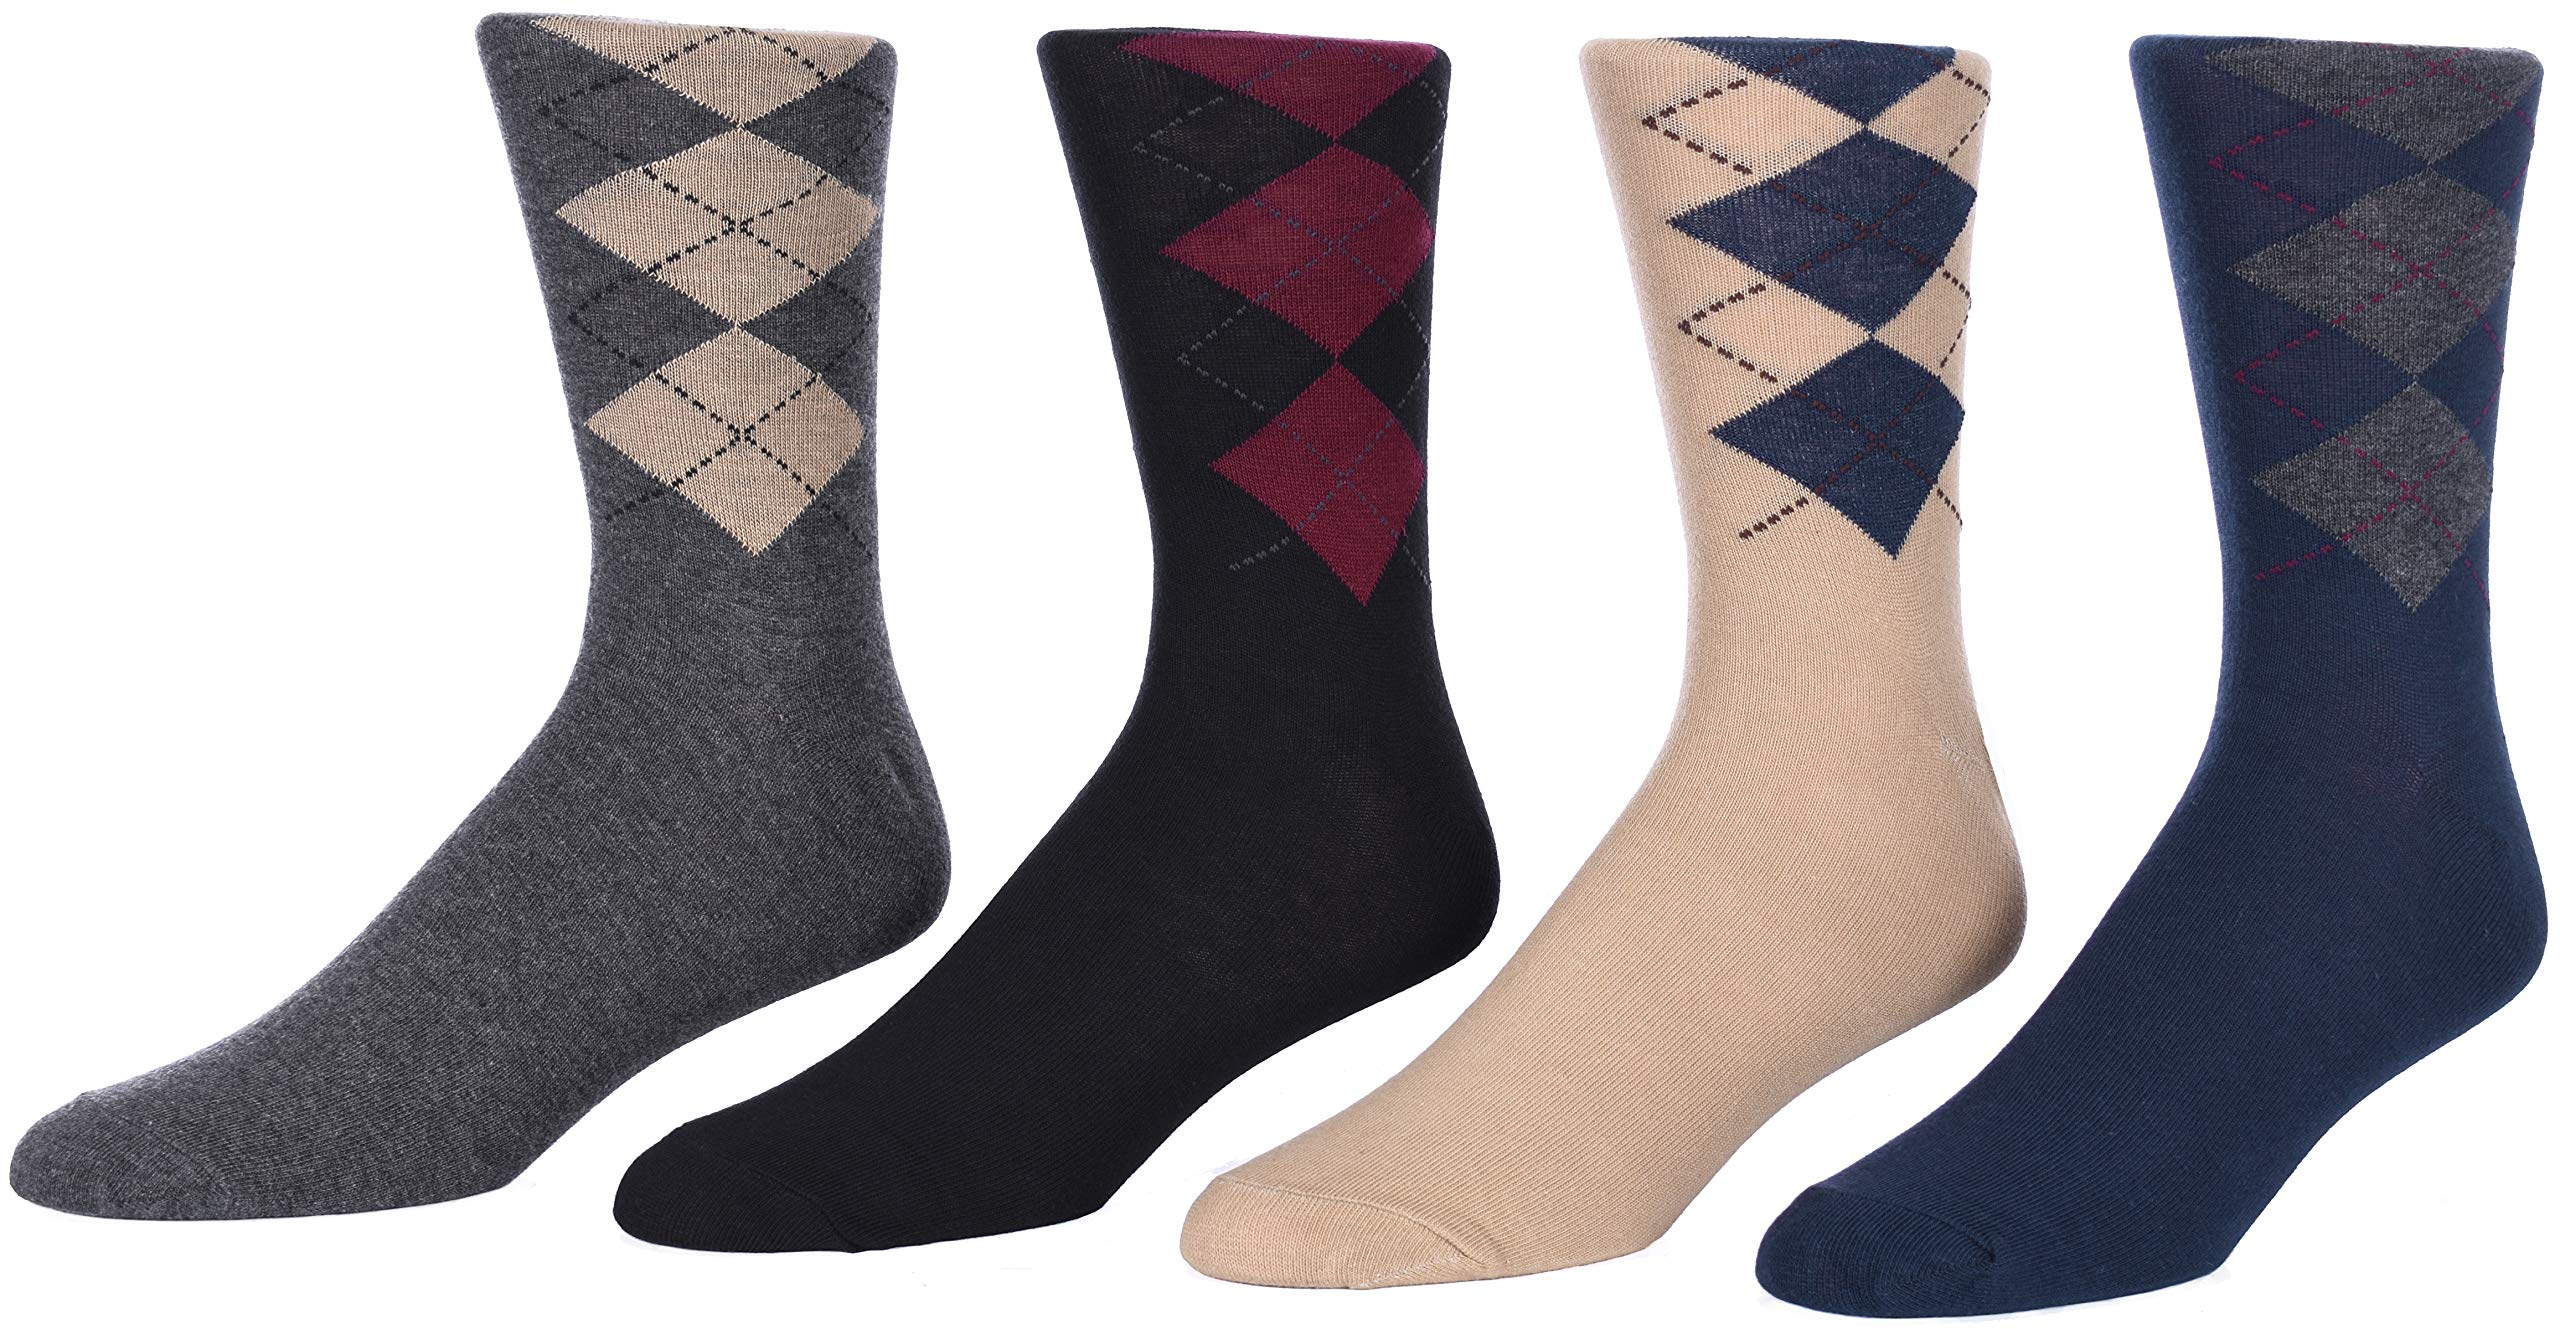 Men's Argyle Dress Socks Multi-Color 4-Packs in Large and Small Print Designs (6-12, 4 Pack B - Large Print)